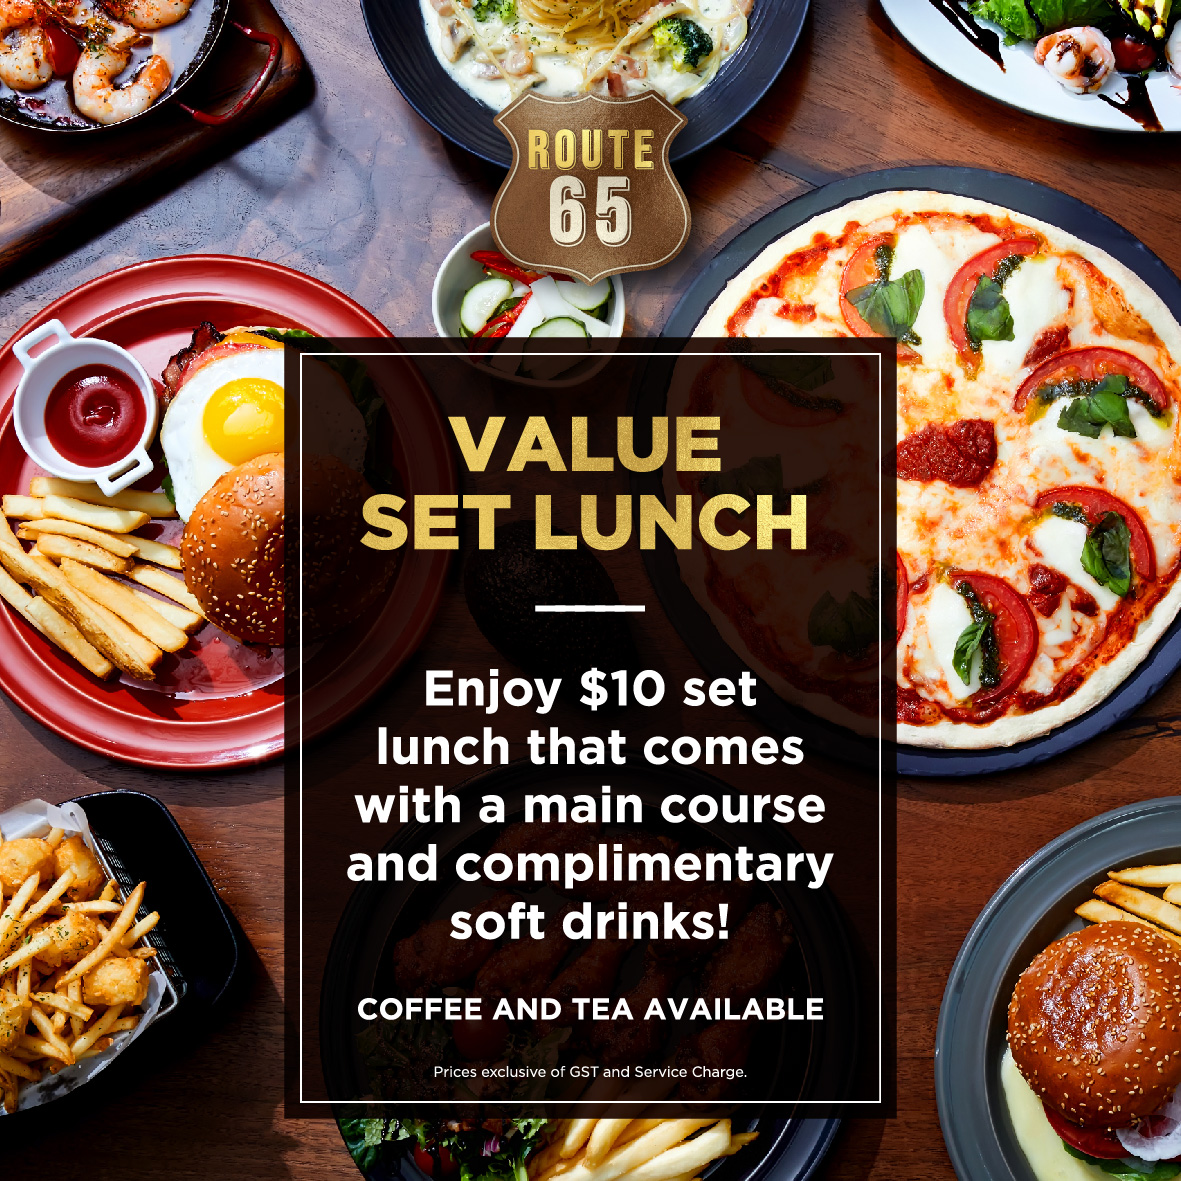 Enjoy attractive promotions such as 1-for-1 Mains at Route 65 Bar + Kitchen | Why Not Deals 2 & Promotions